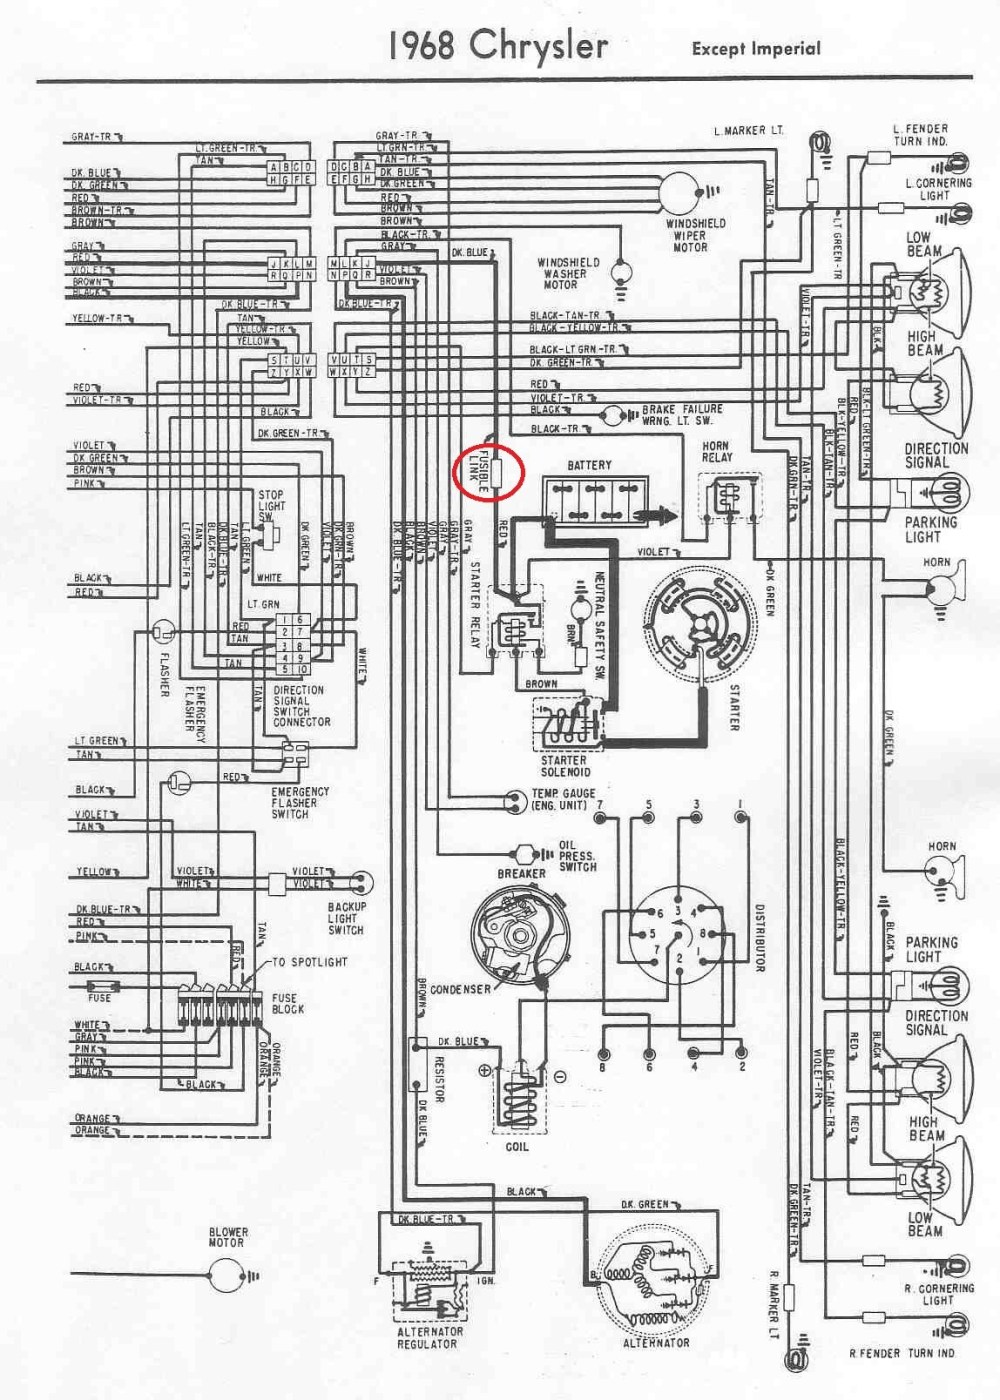 medium resolution of 1950 plymouth engine wiring diagram manual e book 1959 chrysler wiring diagram